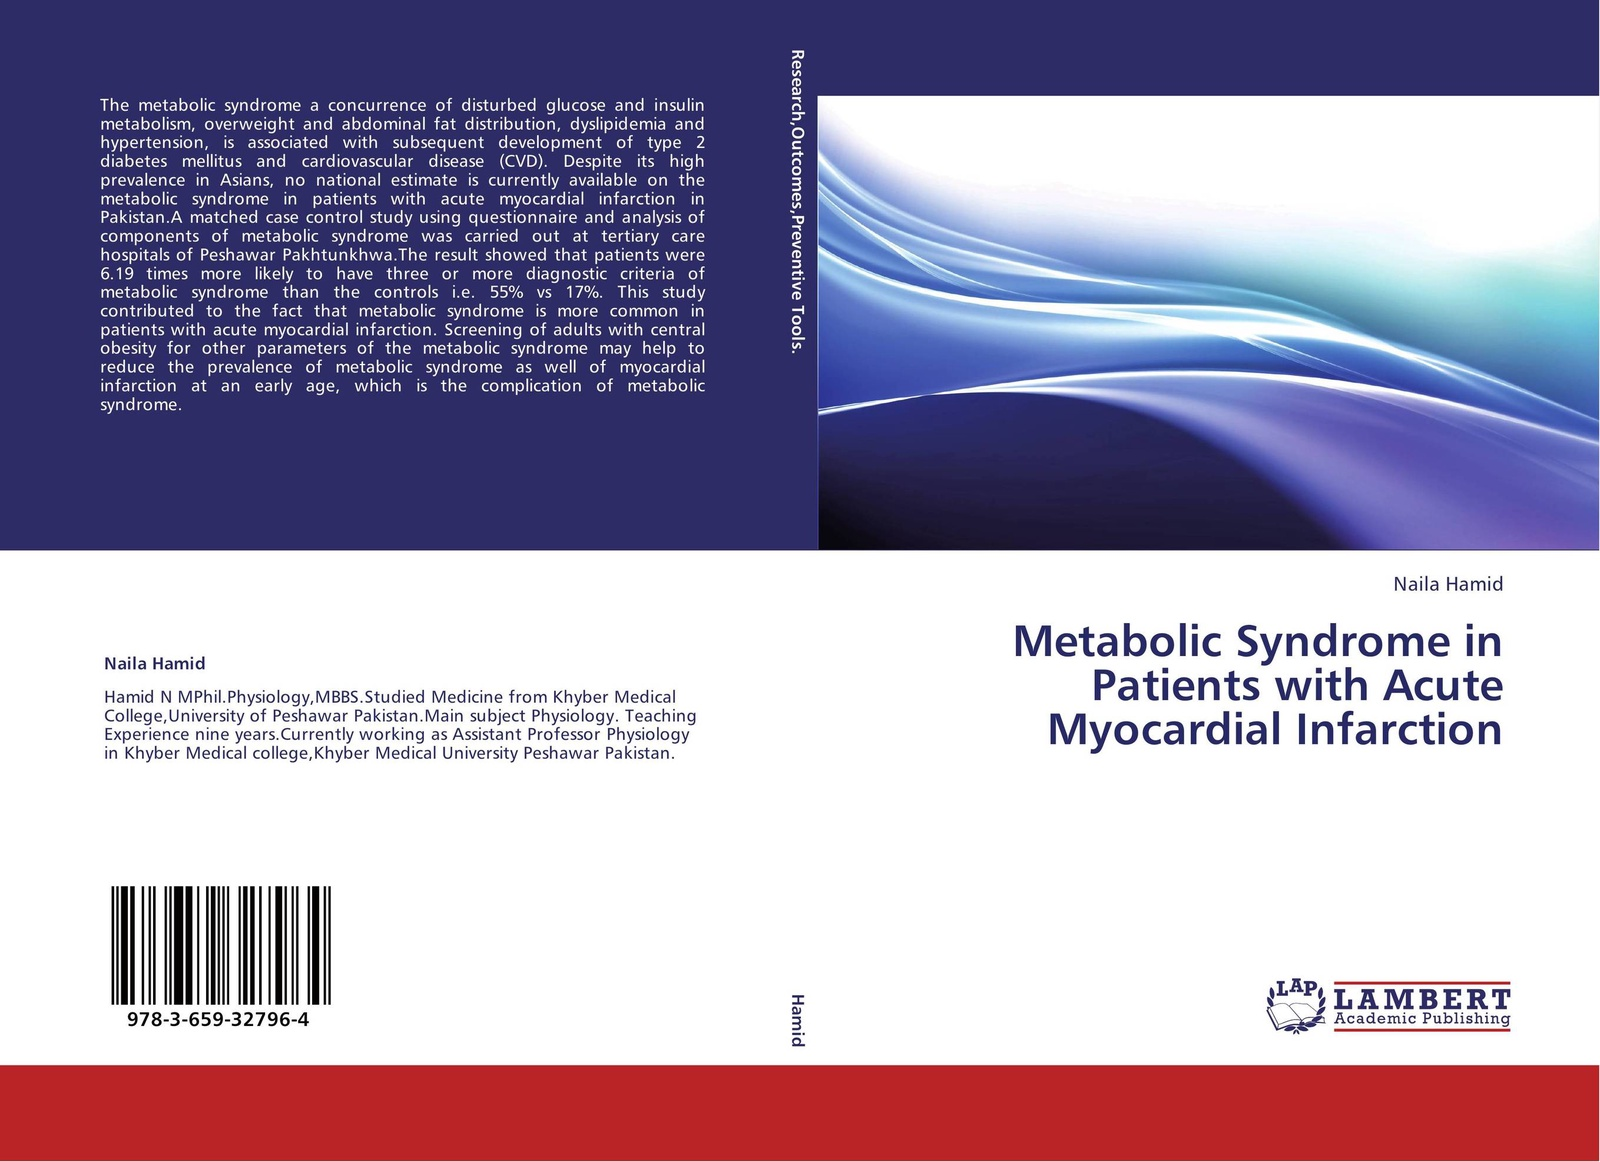 Naila Hamid Metabolic Syndrome in Patients with Acute Myocardial Infarction tahira farooqui metabolic syndrome and neurological disorders